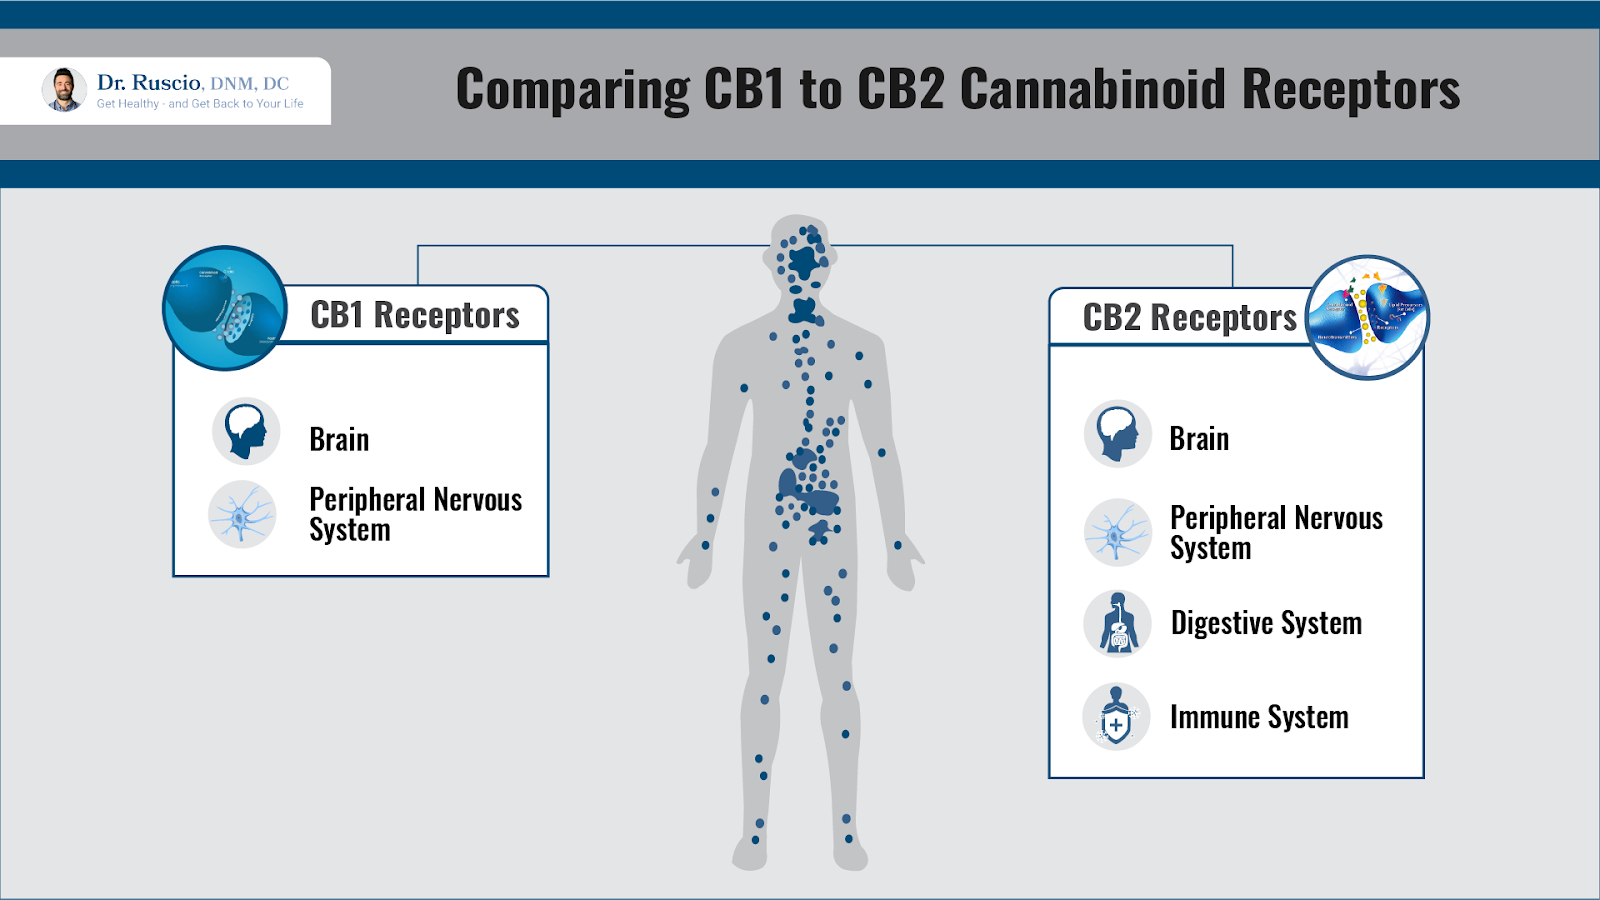 Comparing CB1 to CB2 Cannaboids Receptors